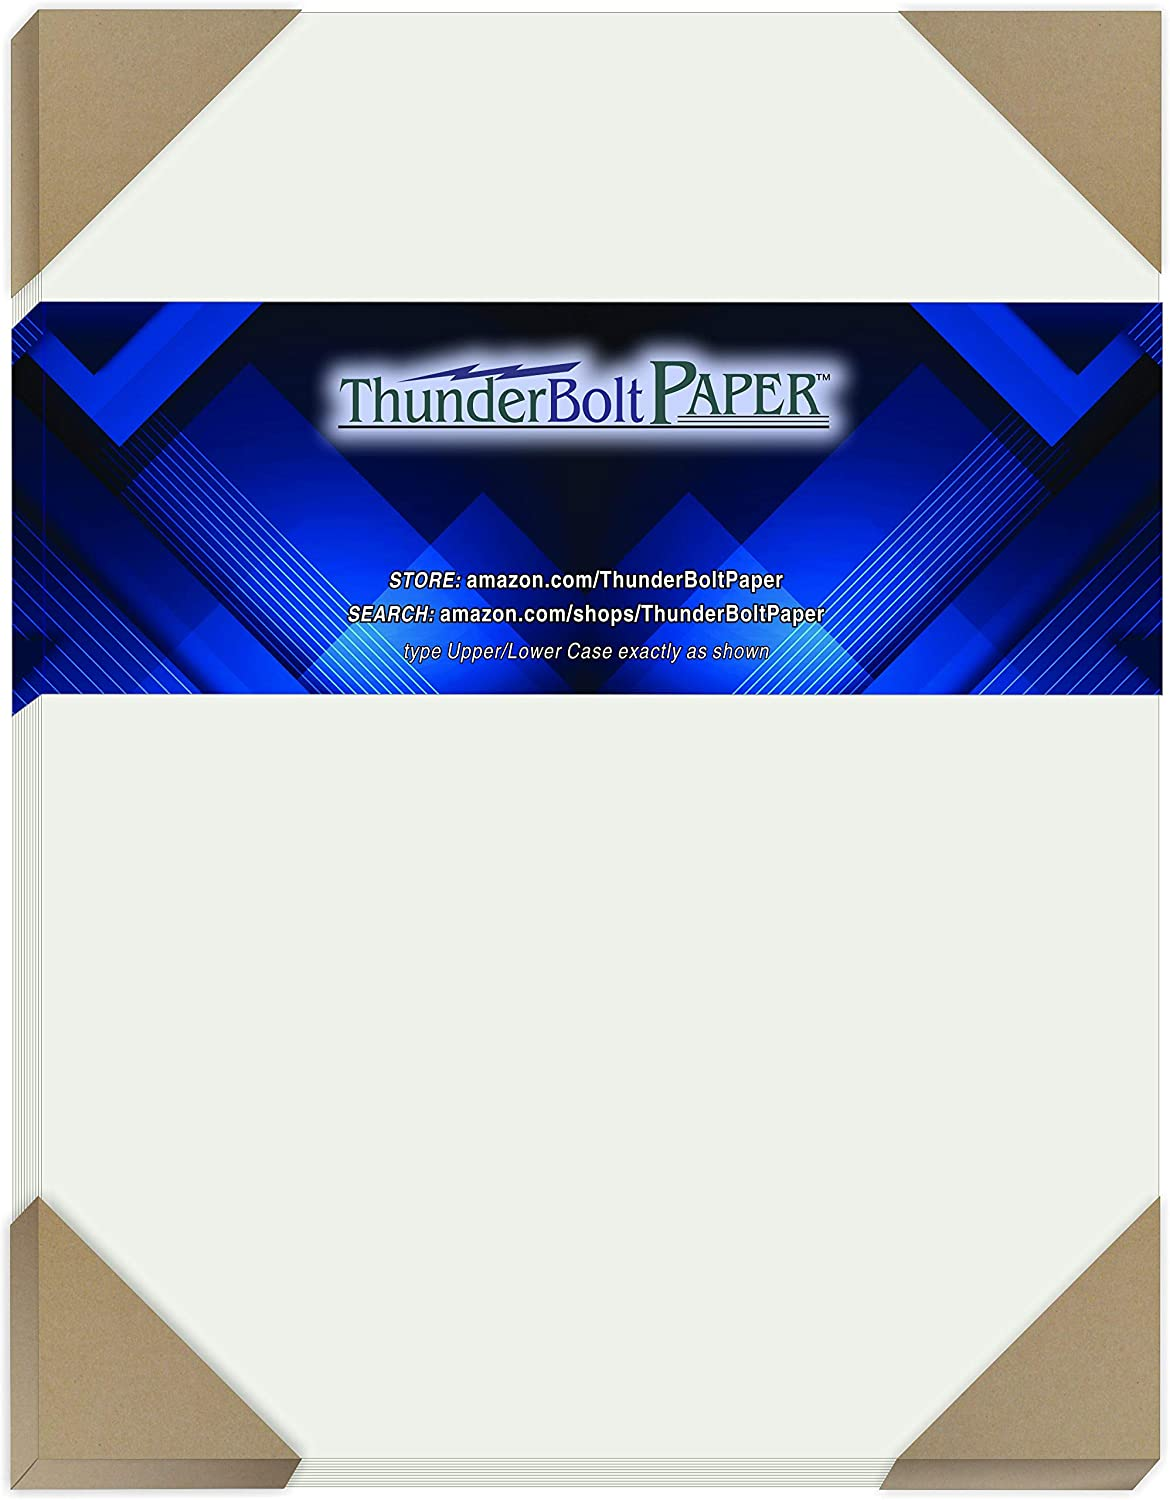 36 lb//Pound 36# Fun|Formal Heavier Weight Vellum Sheets Quality Paper for Fine Results 150 Soft White Translucent 8.5 X 11 Inches Letter Size Medium Thick Not a Clear Transparent